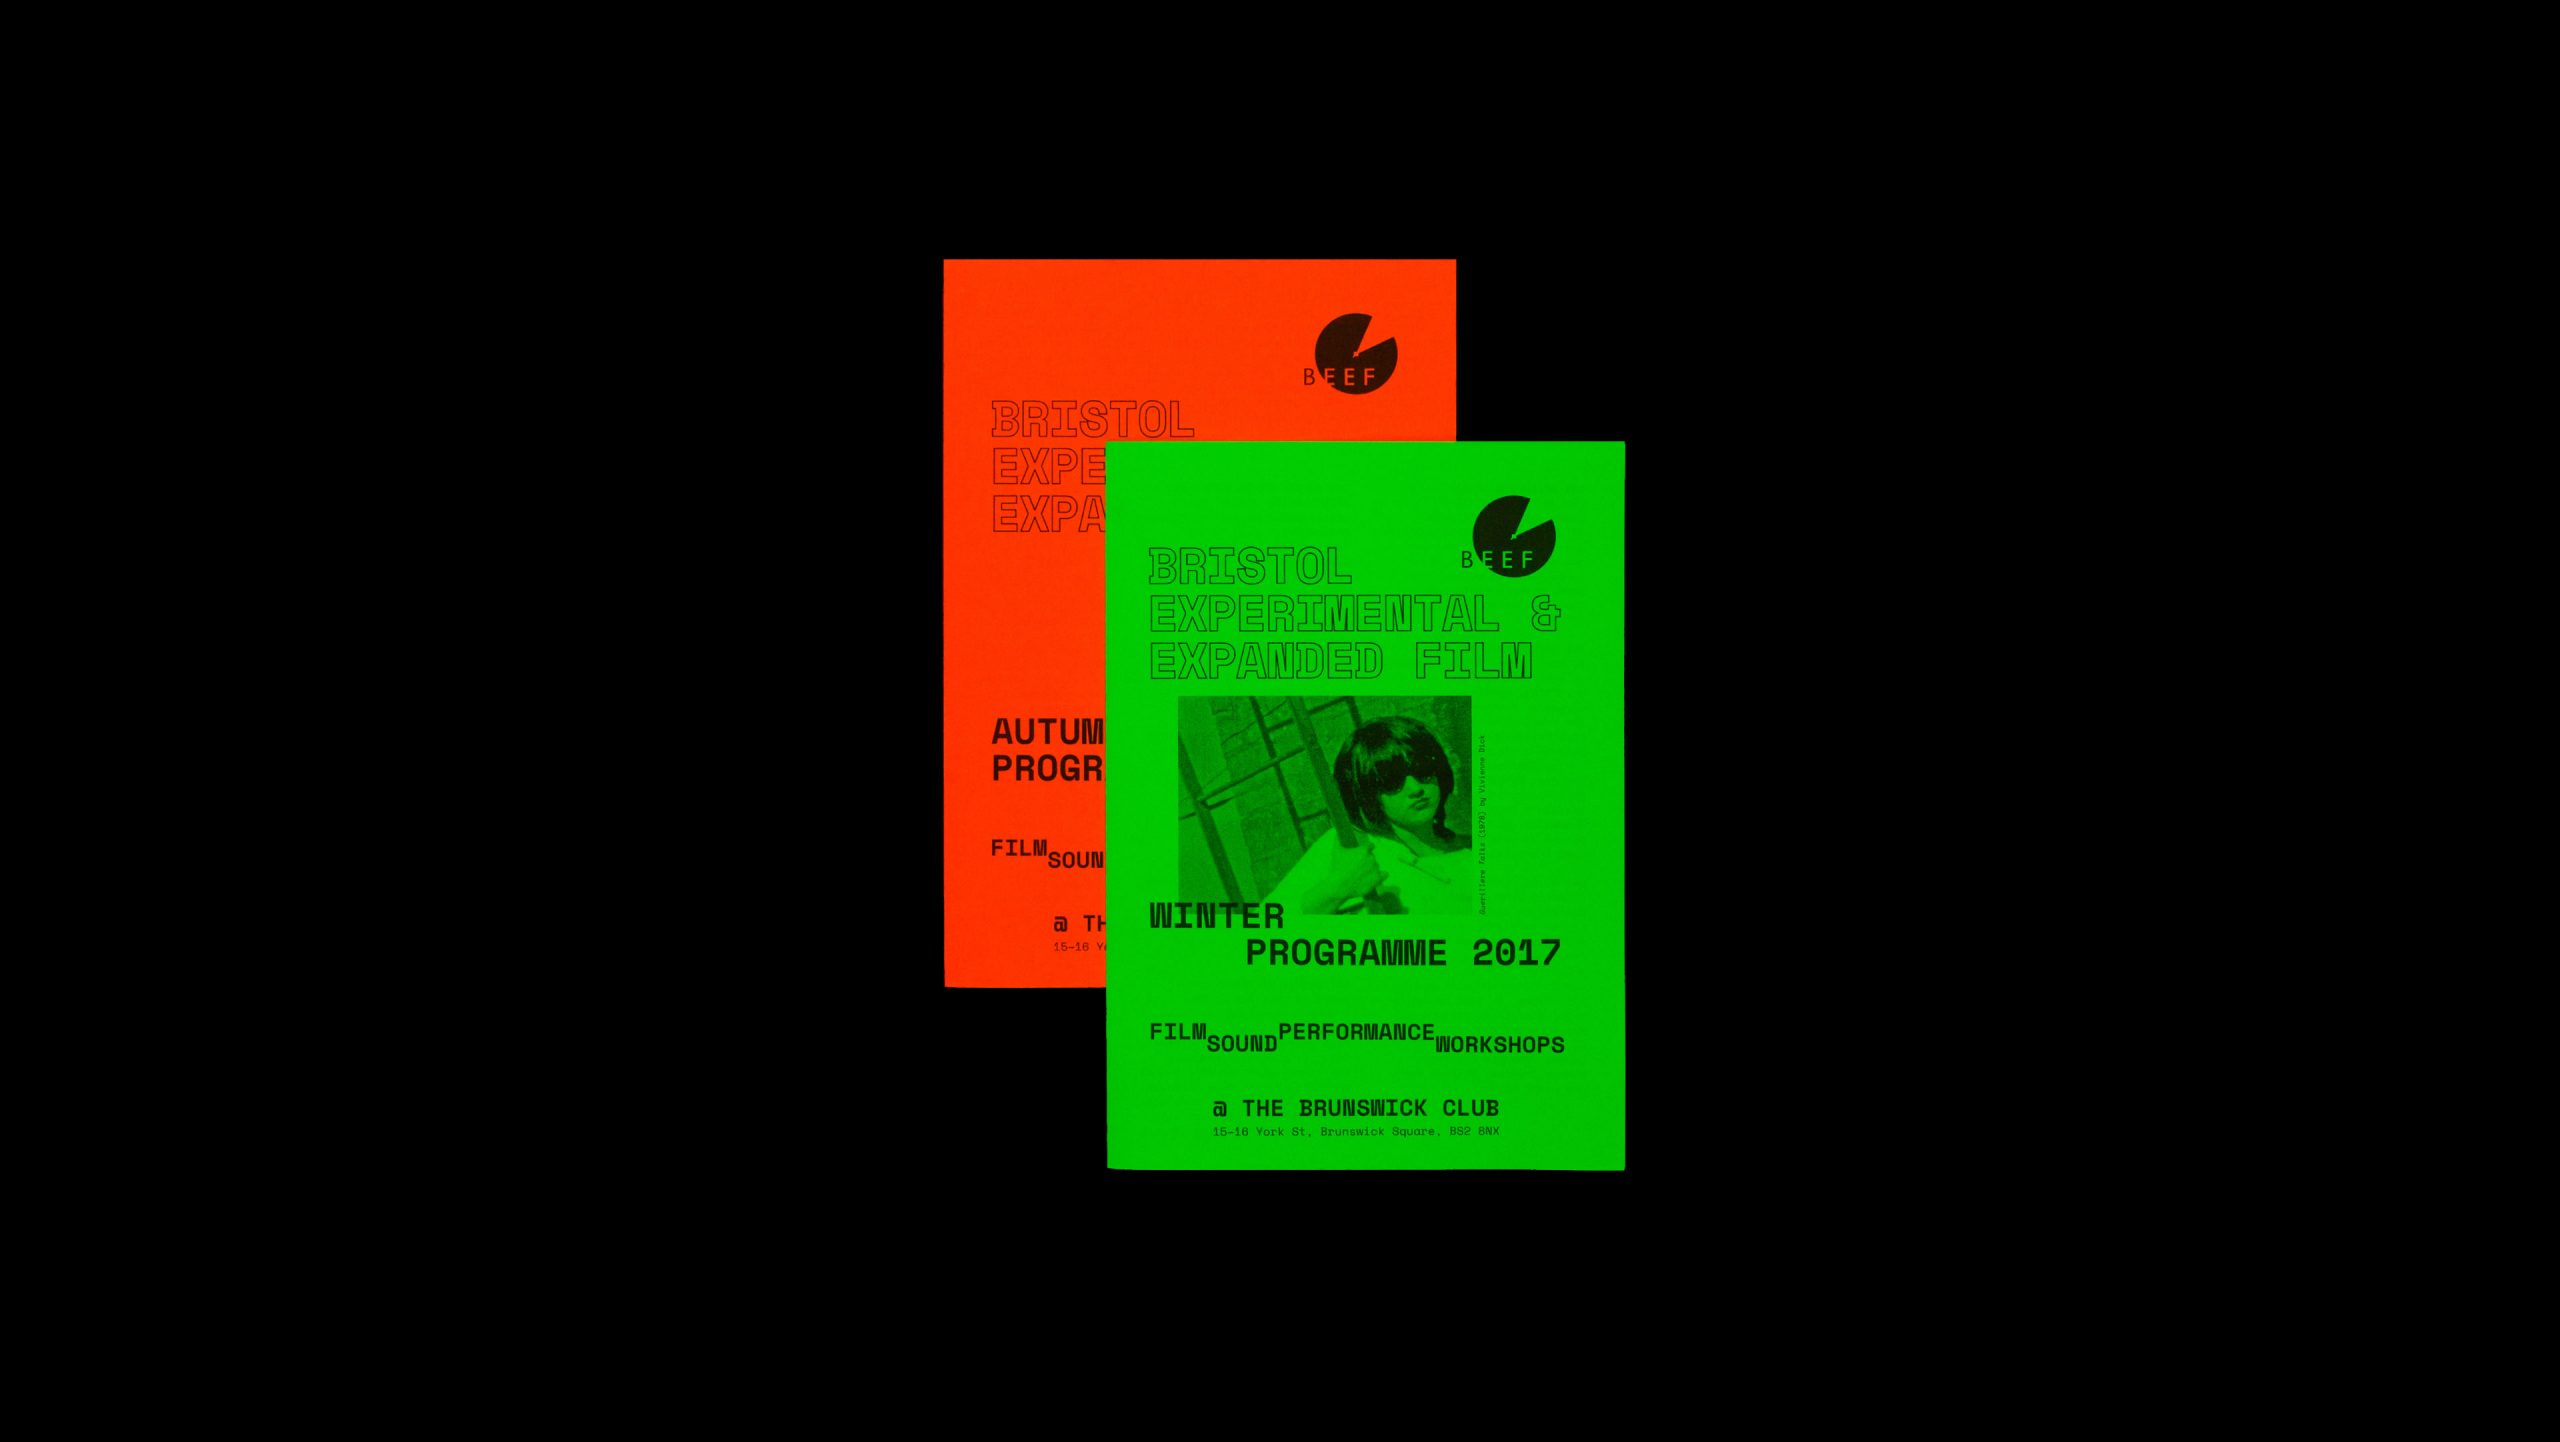 Cover designs for BEEF (Bristol Experimental & Expanded Film) programmes, designed by City Edition Studio